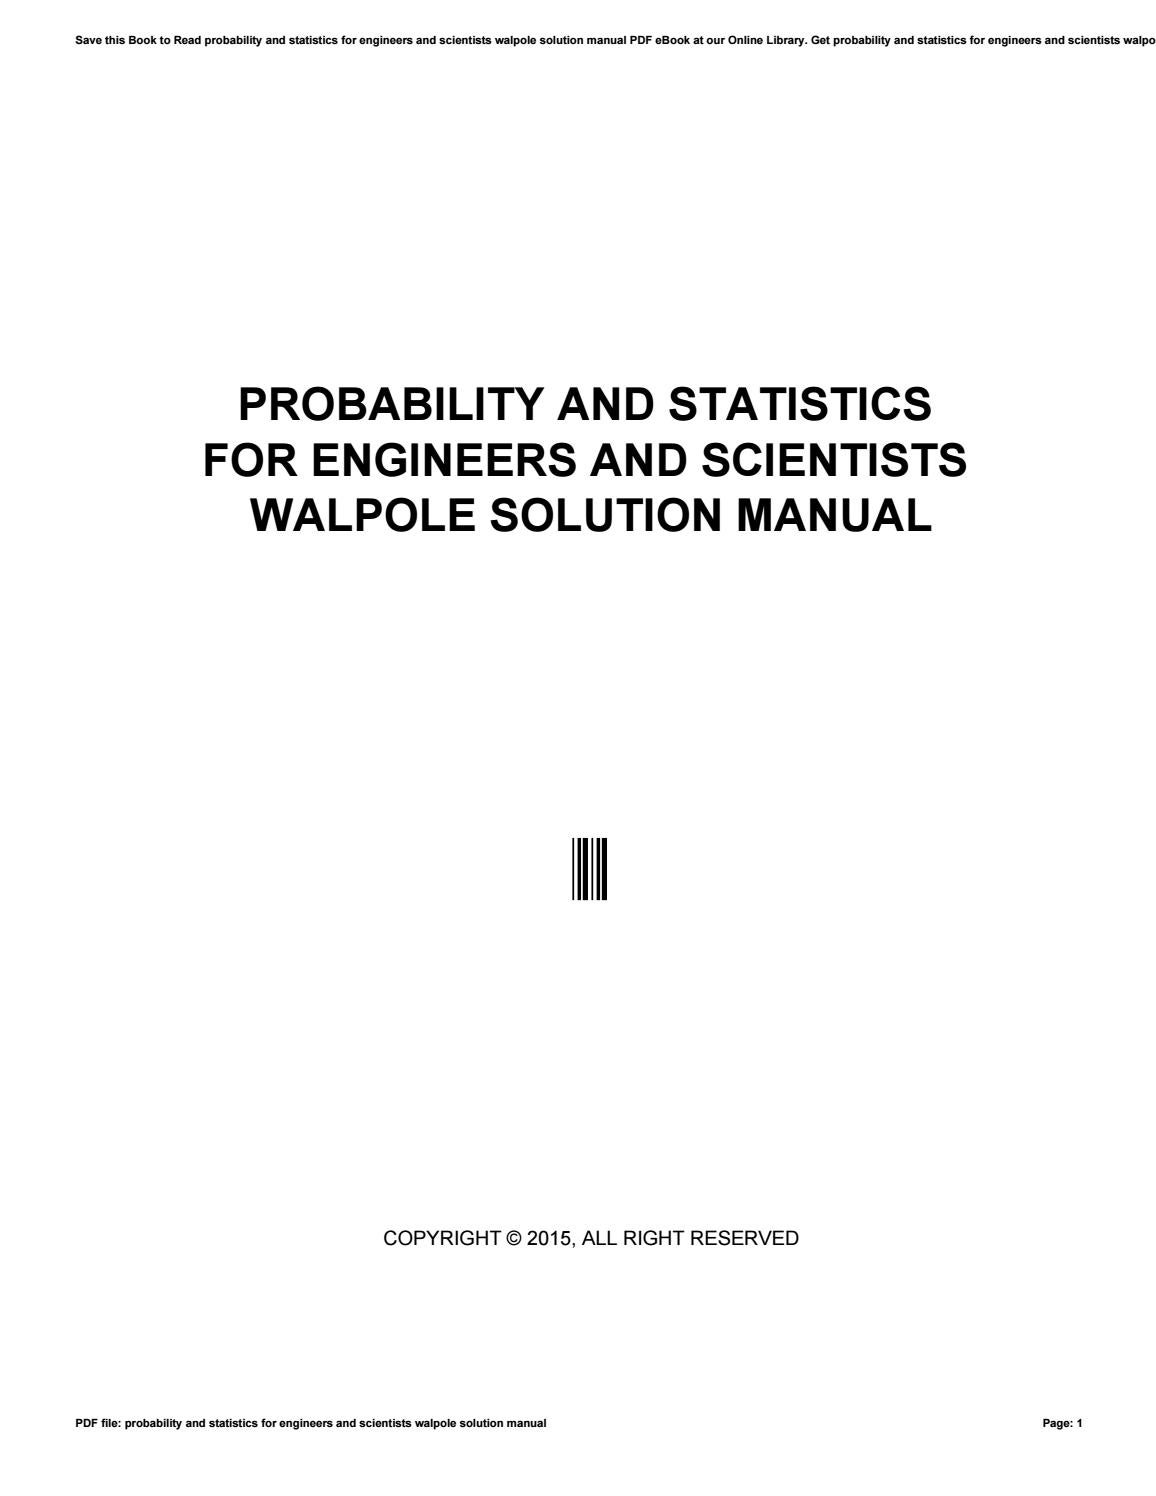 Probability and statistics for engineers and scientists walpole solution  manual by monadi25 - issuu